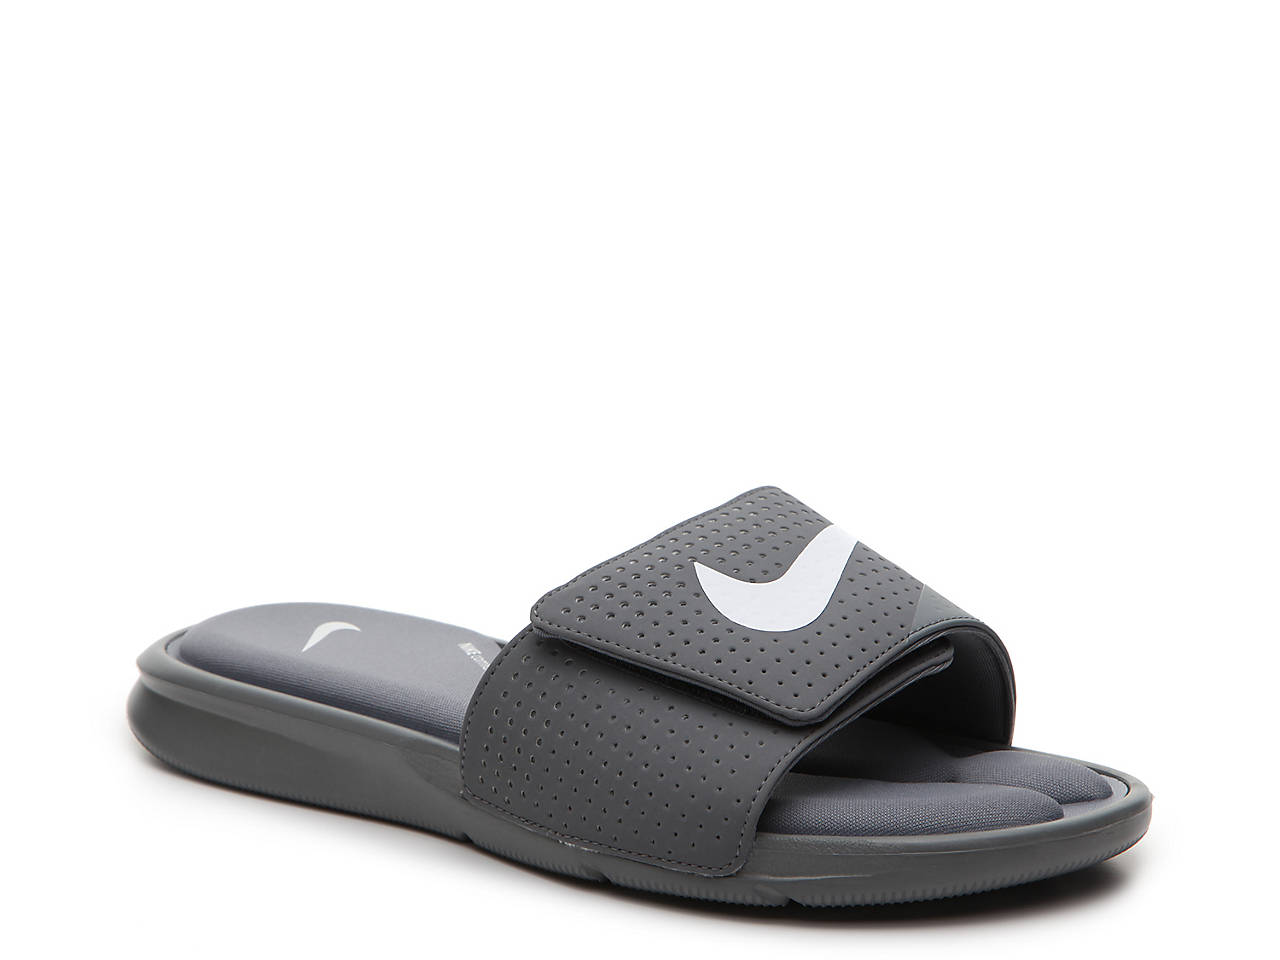 49ec3506879a5f Nike Ultra Comfort Slide Sandal - Men s Men s Shoes